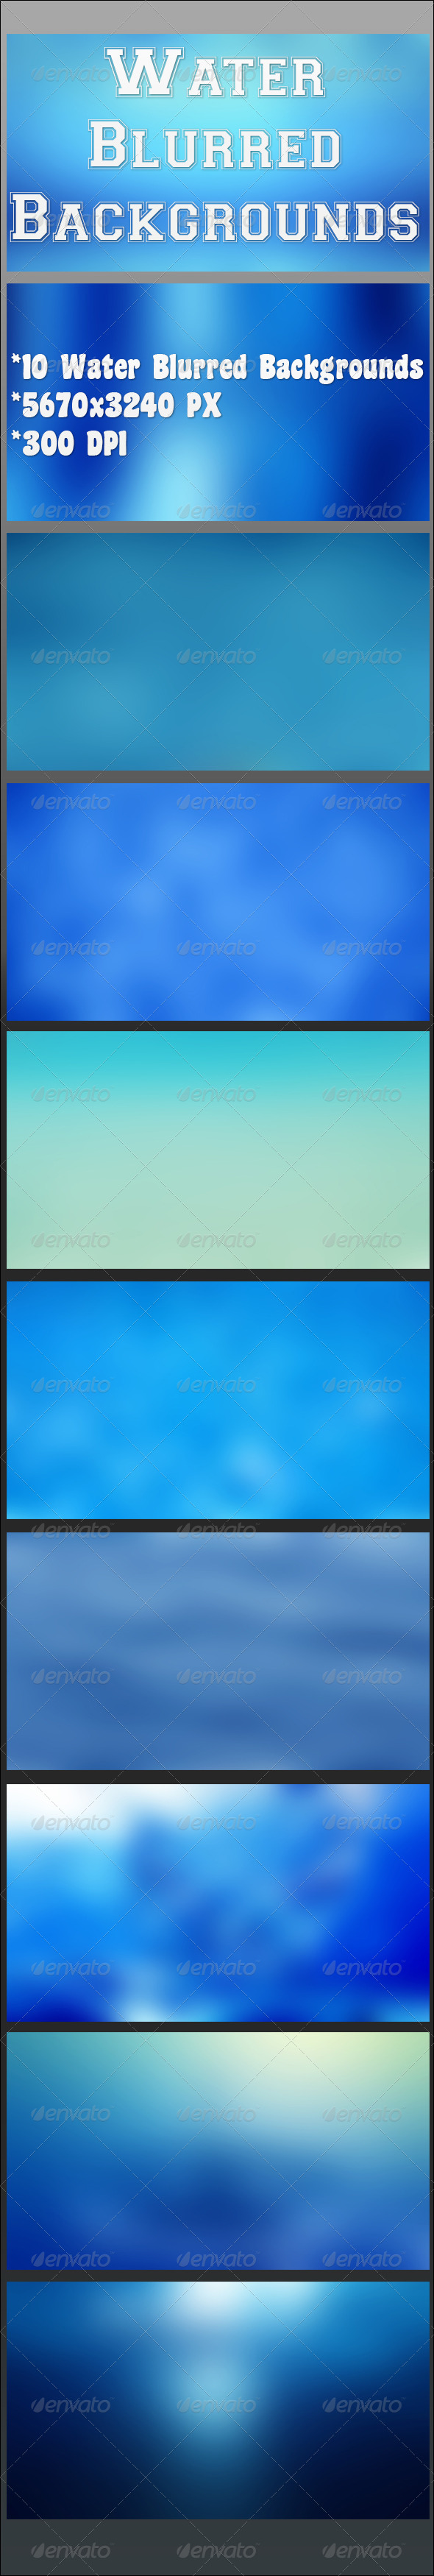 Water Blurred Backgrounds - Backgrounds Graphics